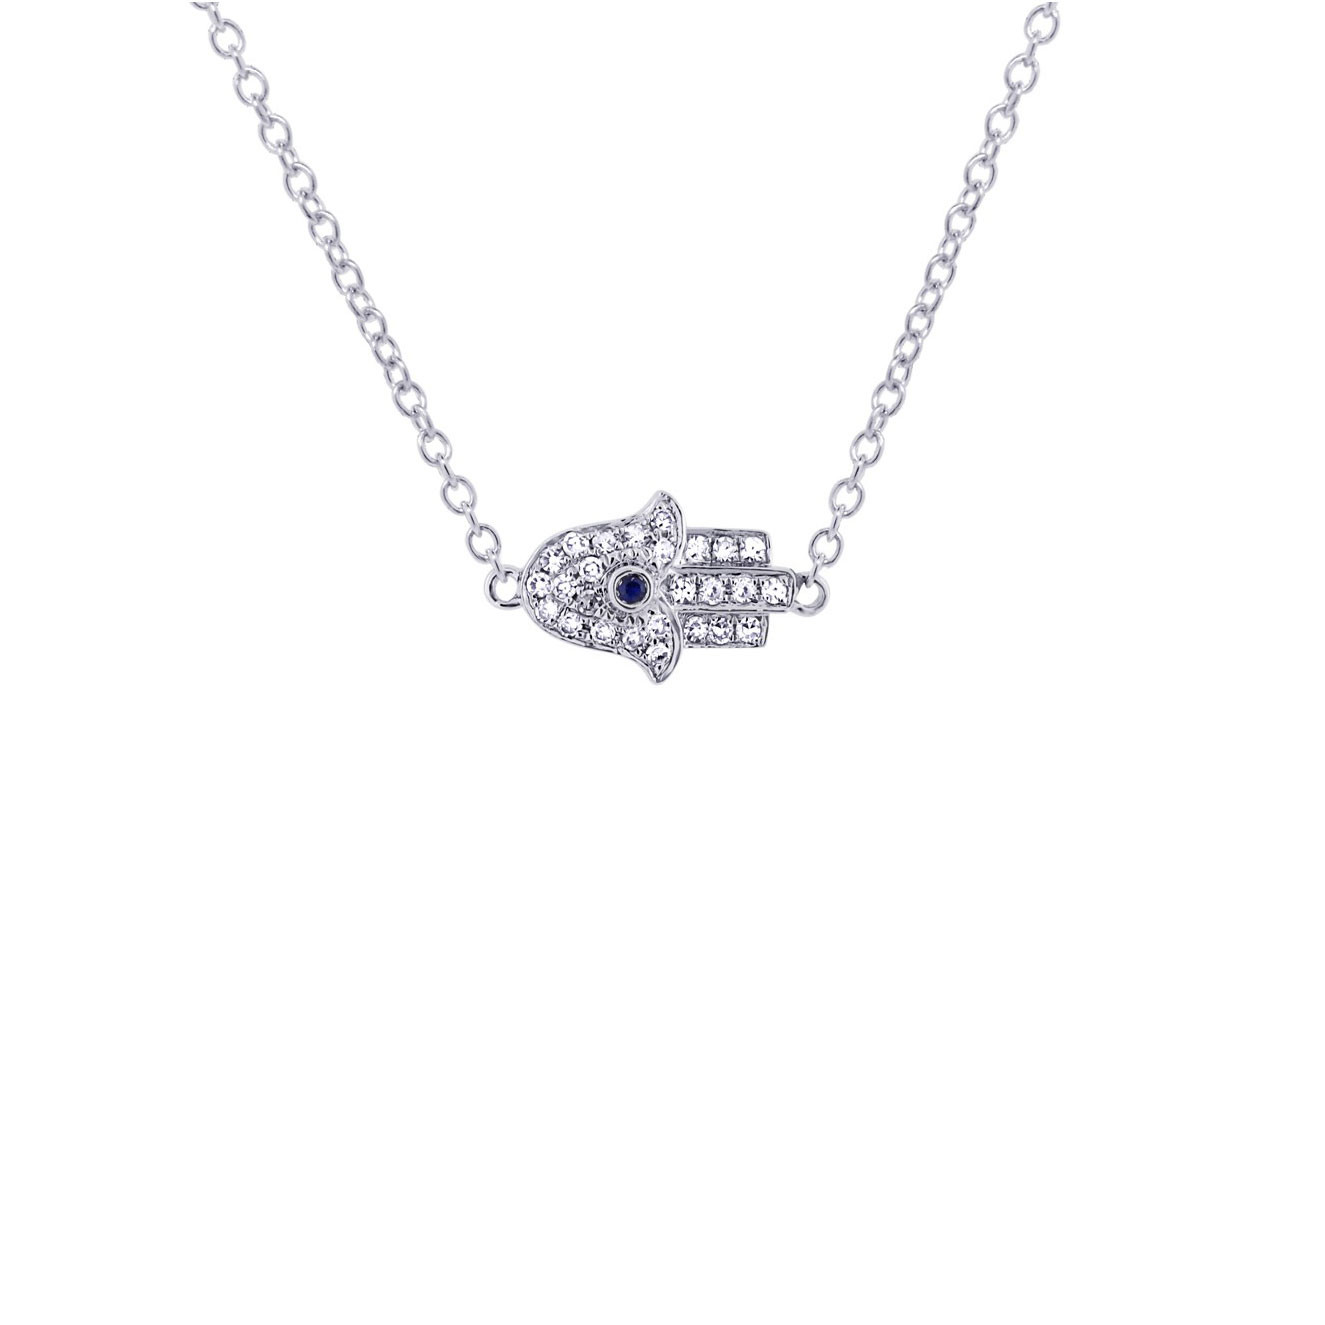 Diamond white gold hamsa necklace with sapphire detail 14k white gold diamondsapphire hamsa necklace mozeypictures